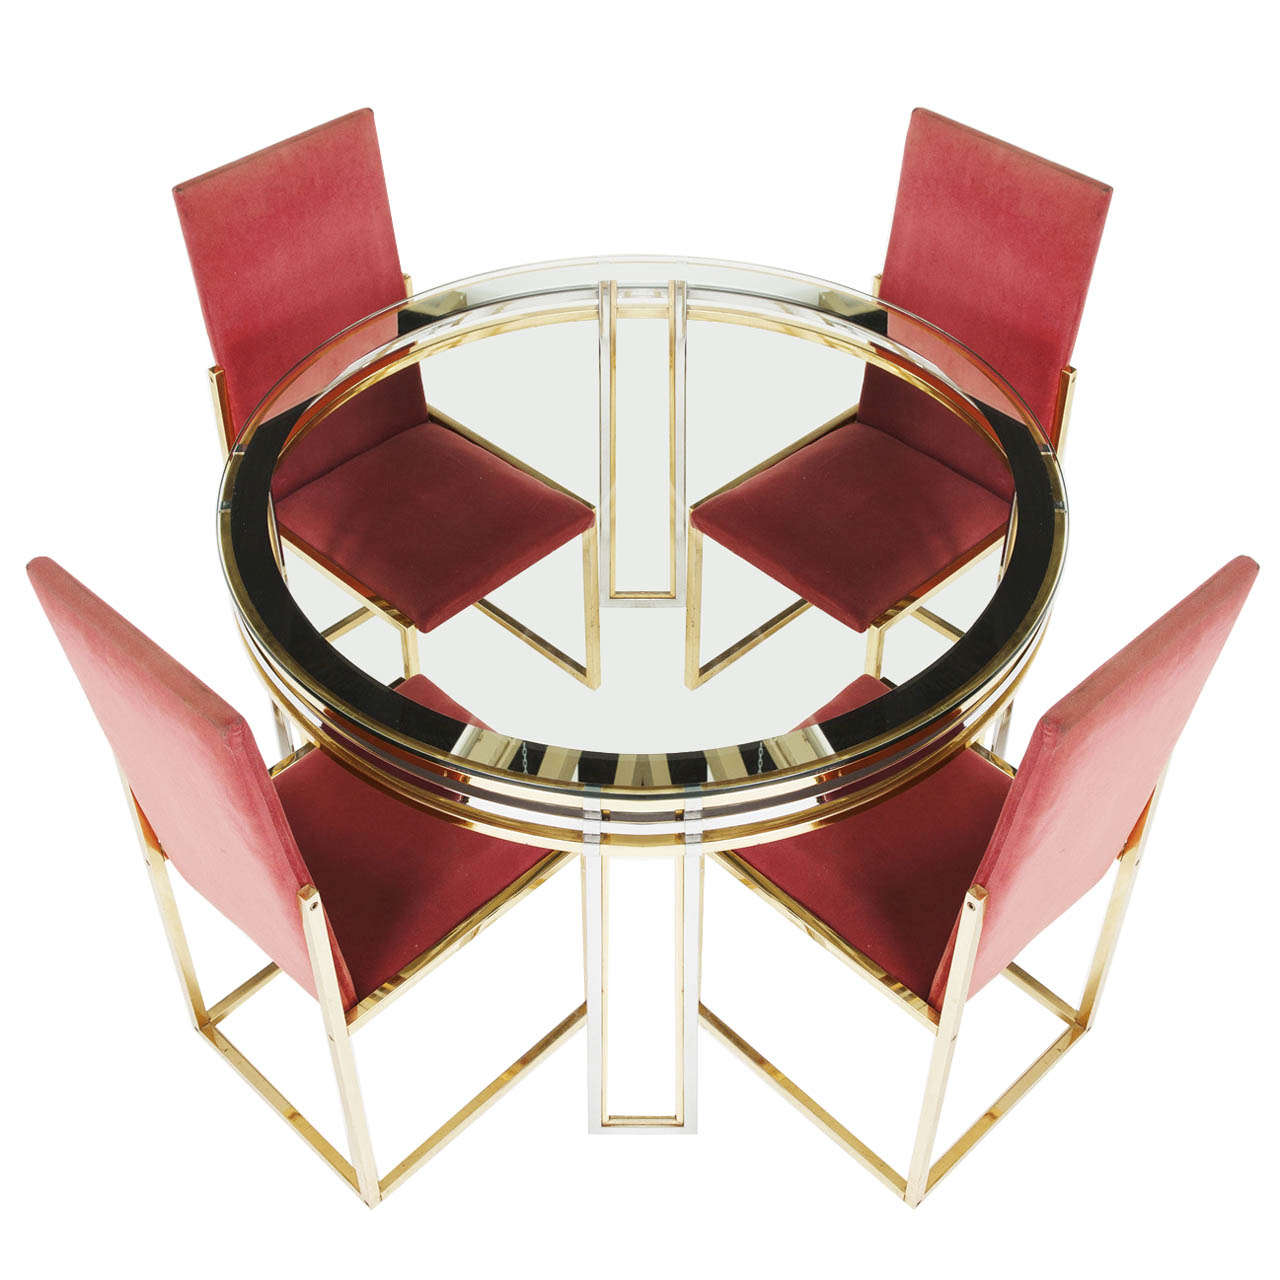 Romeo Rega Centre Table and Chairs in Chrome and Brass